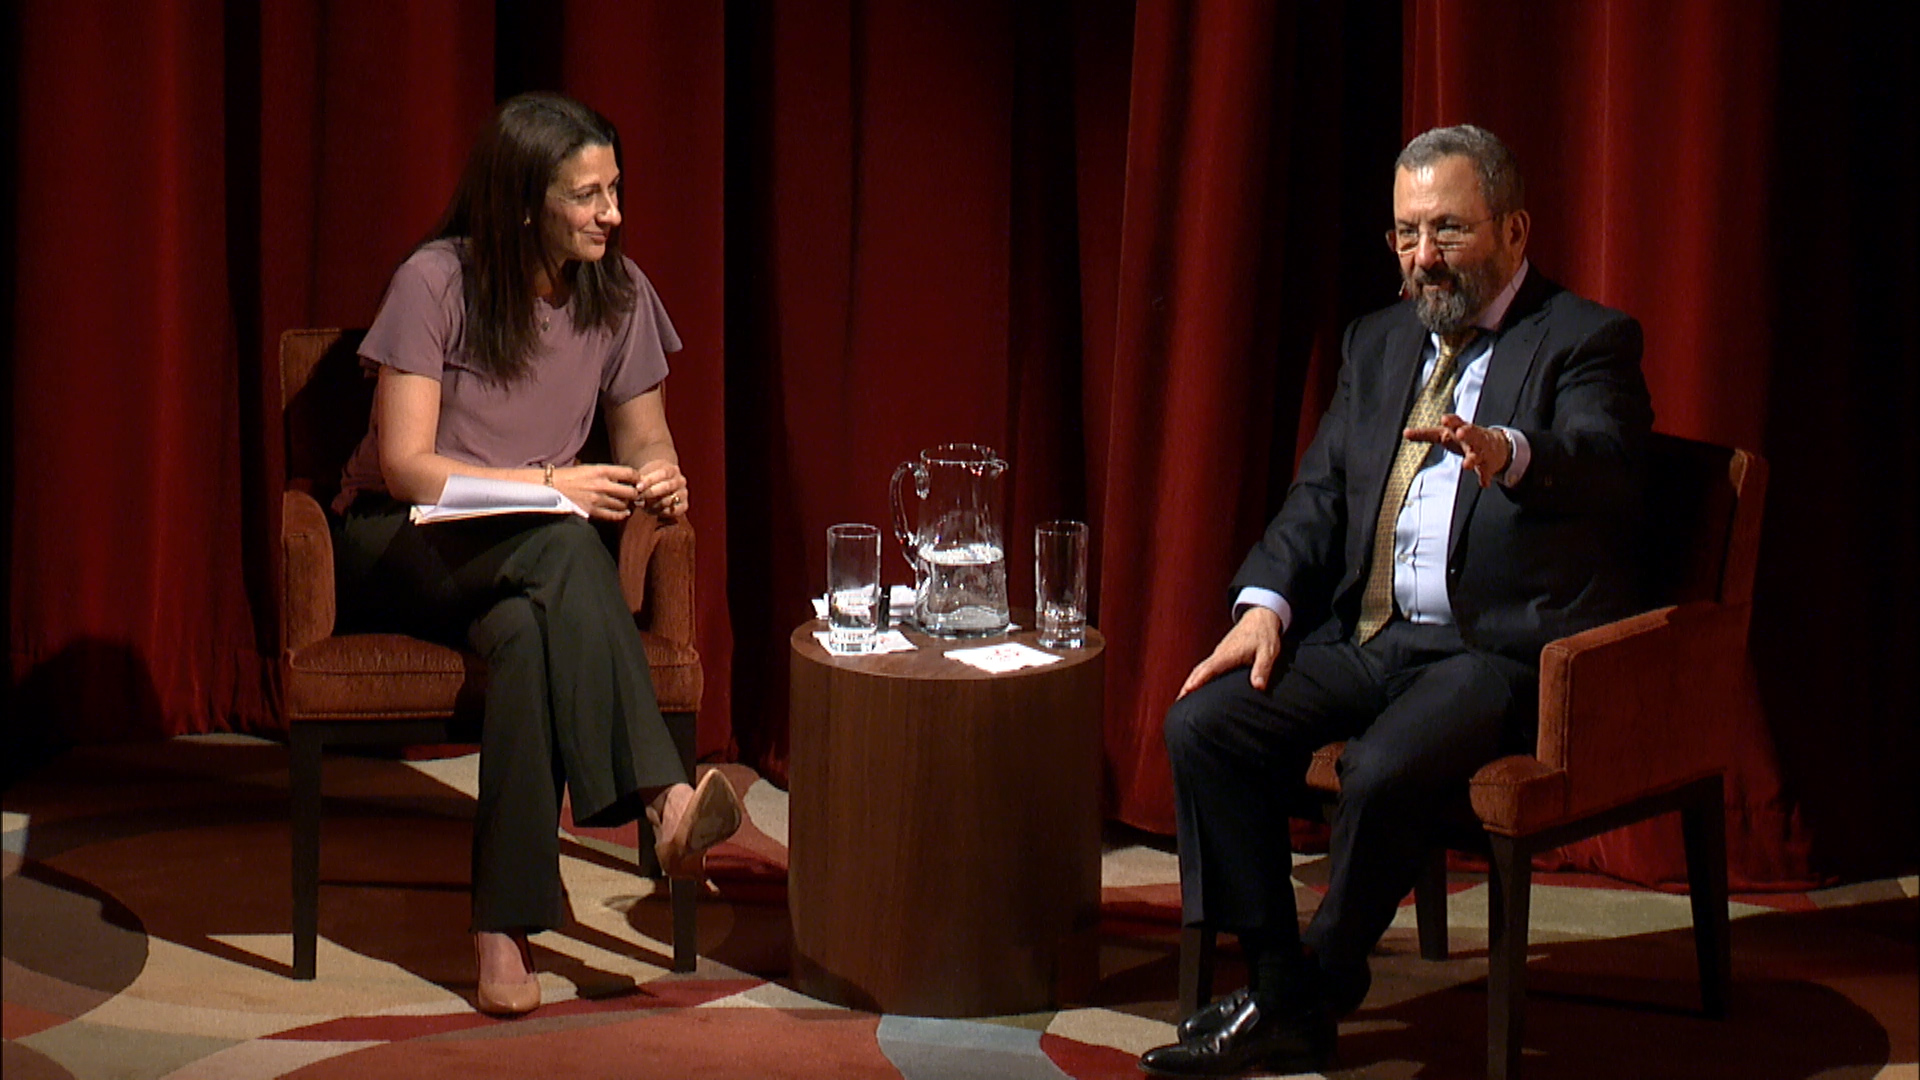 Former Israeli Prime Minister Ehud Barak in conversation with Stanford University's Janine Zacharia at the JCCSF, May 16. (Photo/JCCSF)